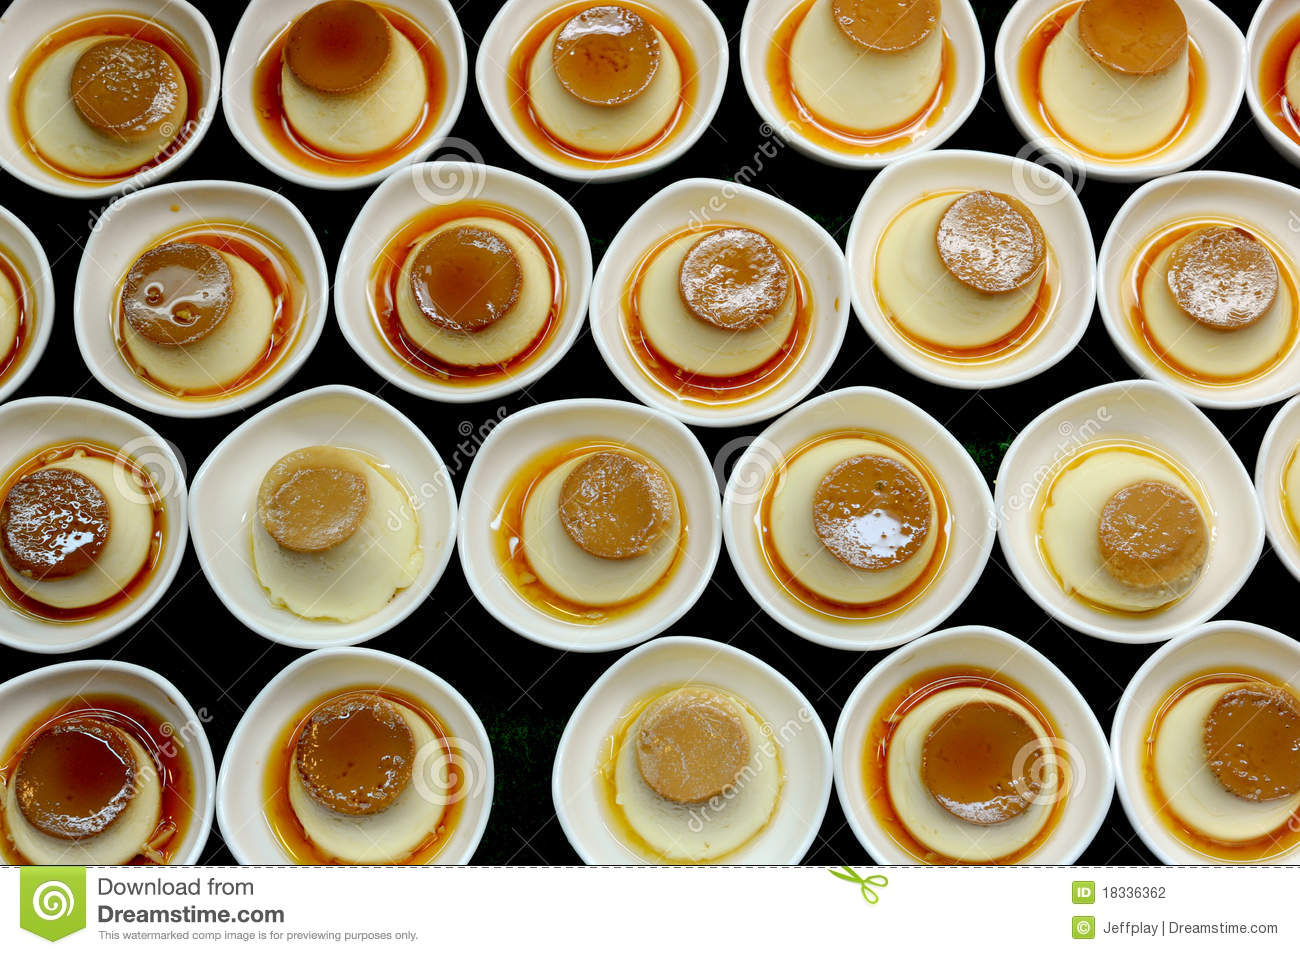 Pin Pudding Cup Clipart On Pinterest